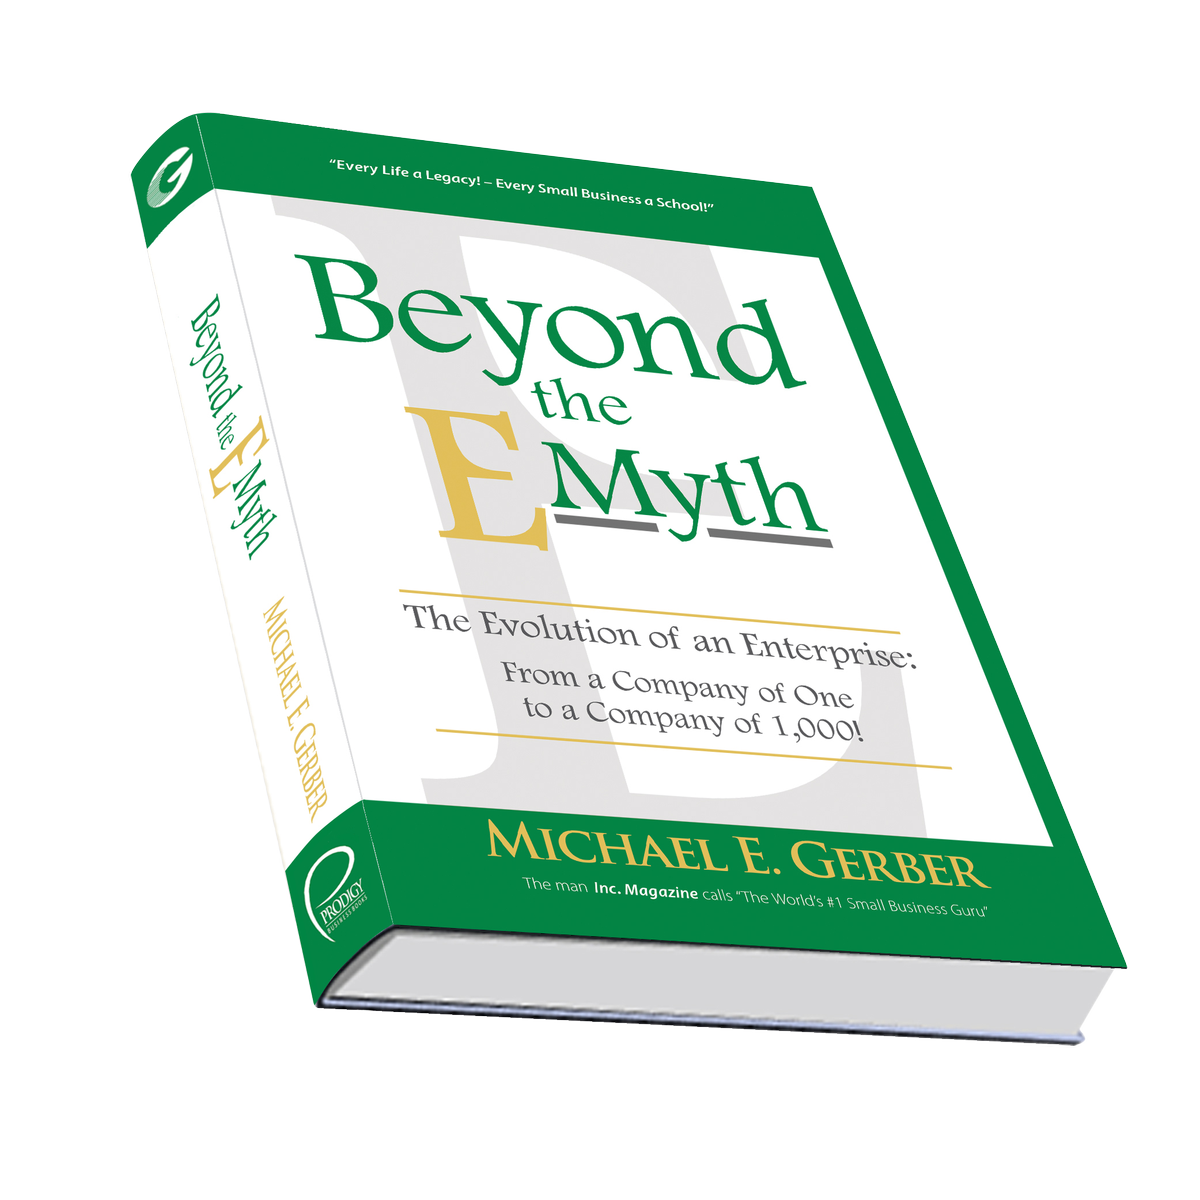 Beyond-the-E-Myth-3D-Cover-28_preview